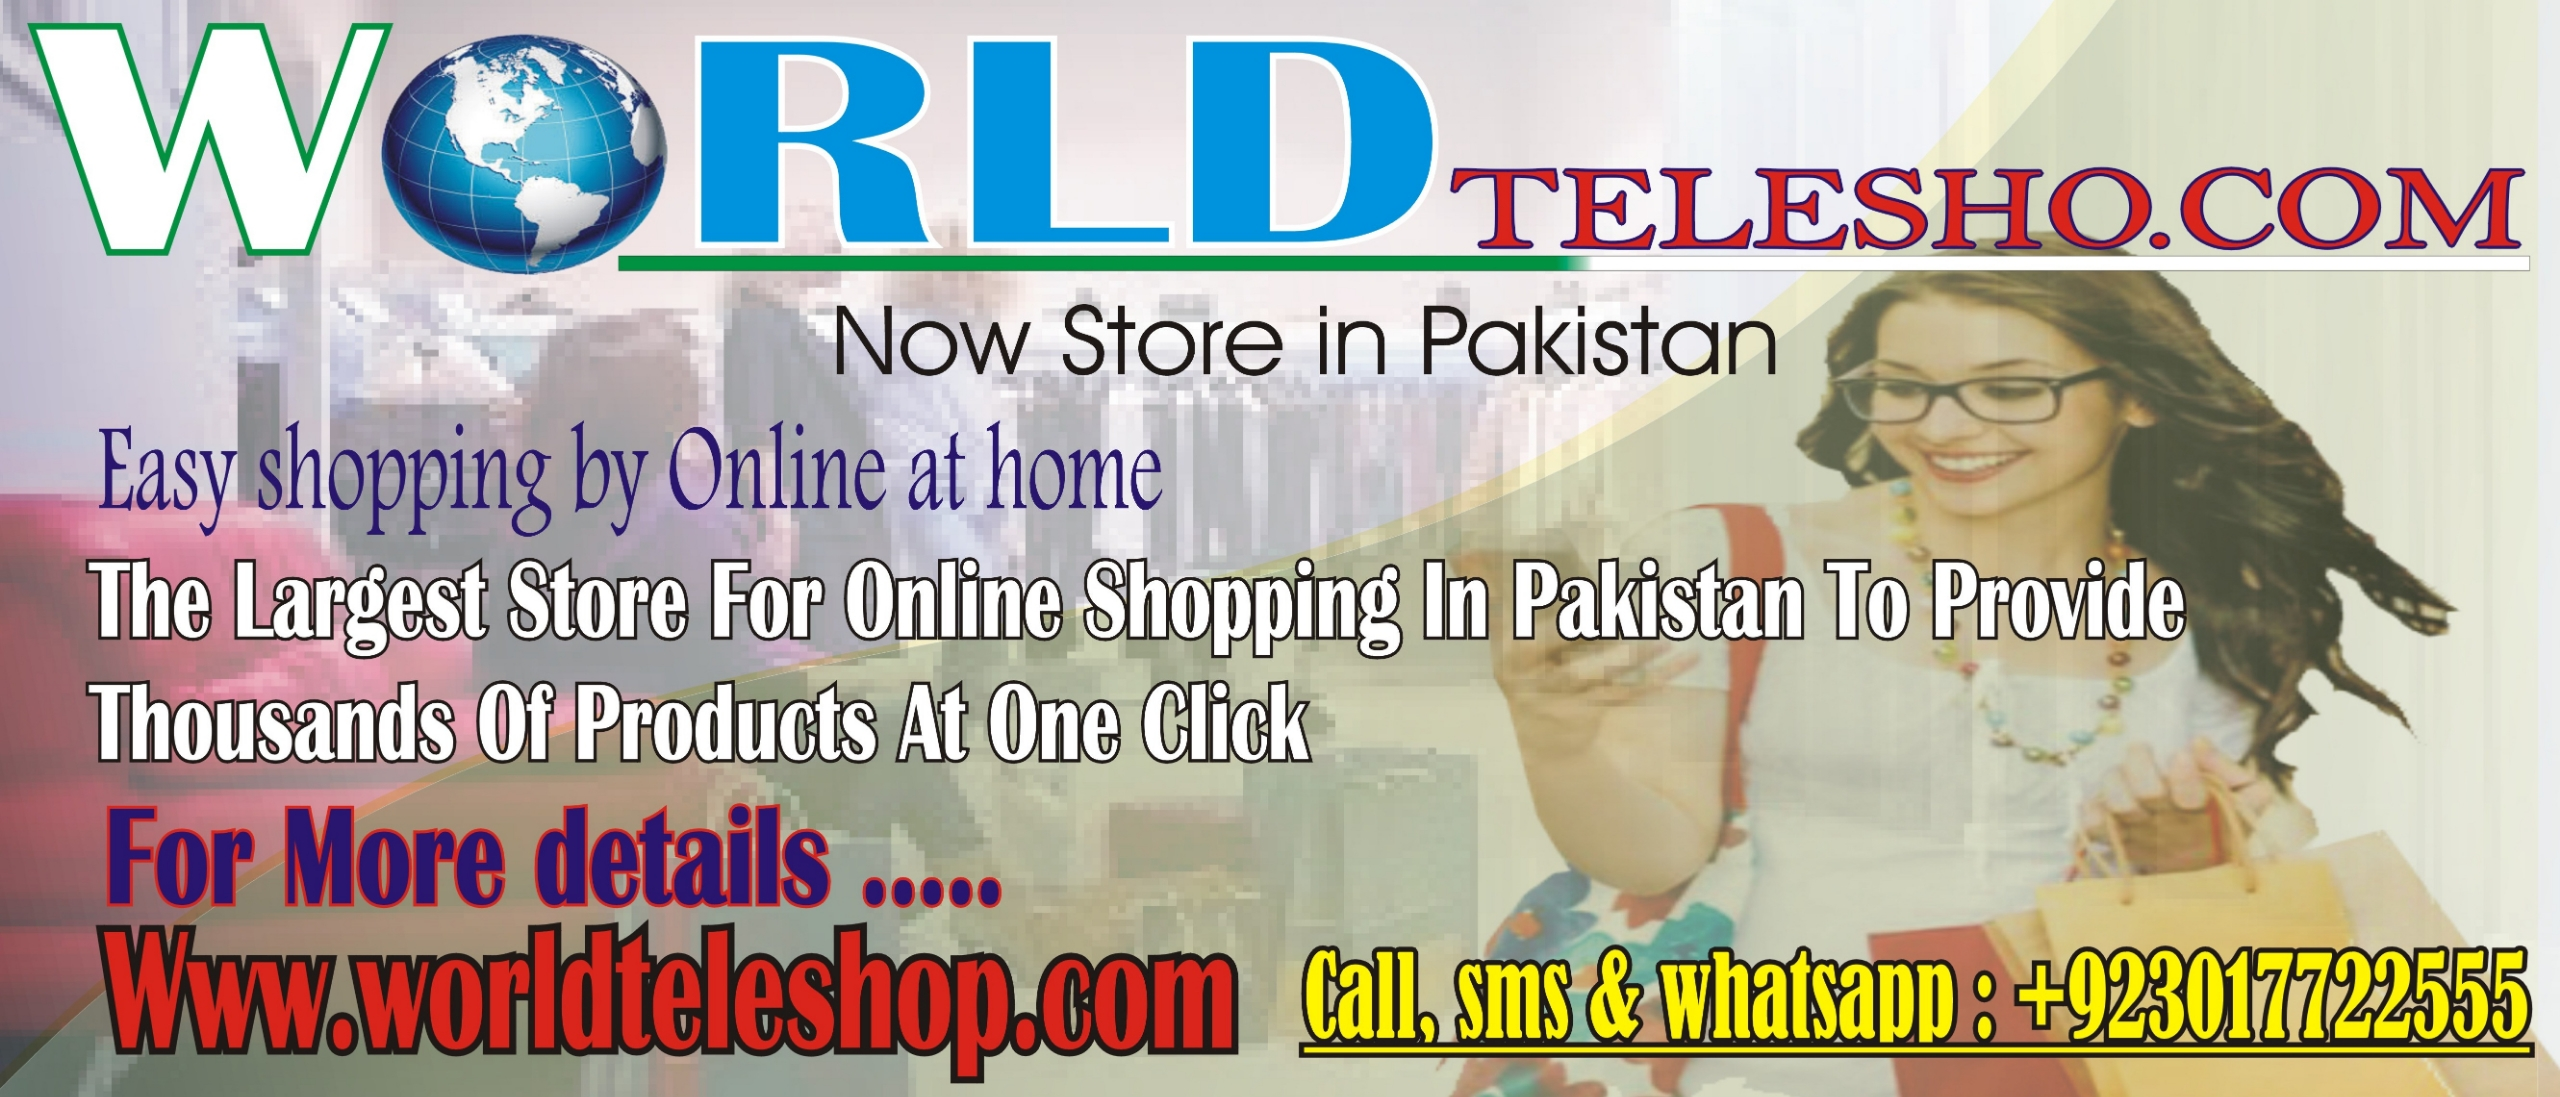 worldteleshop (@worldtleleshop) Cover Image